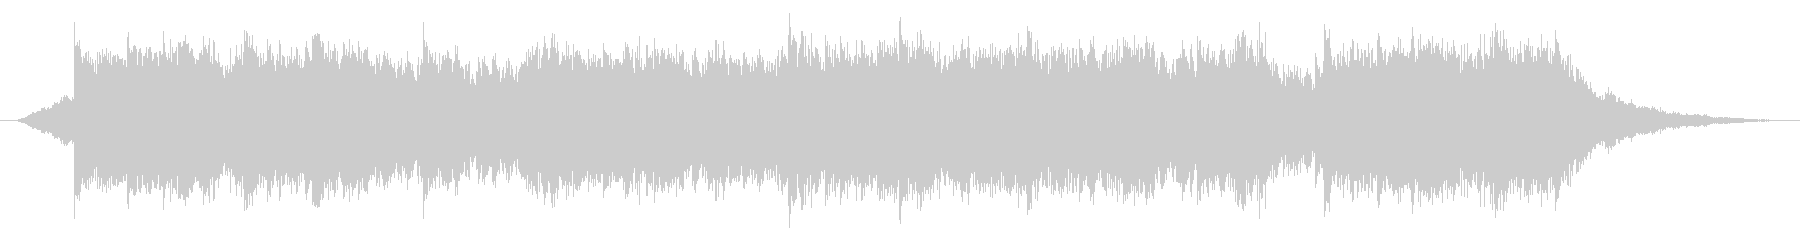 A song of a sad and suspicious scene's unreproduced waveform